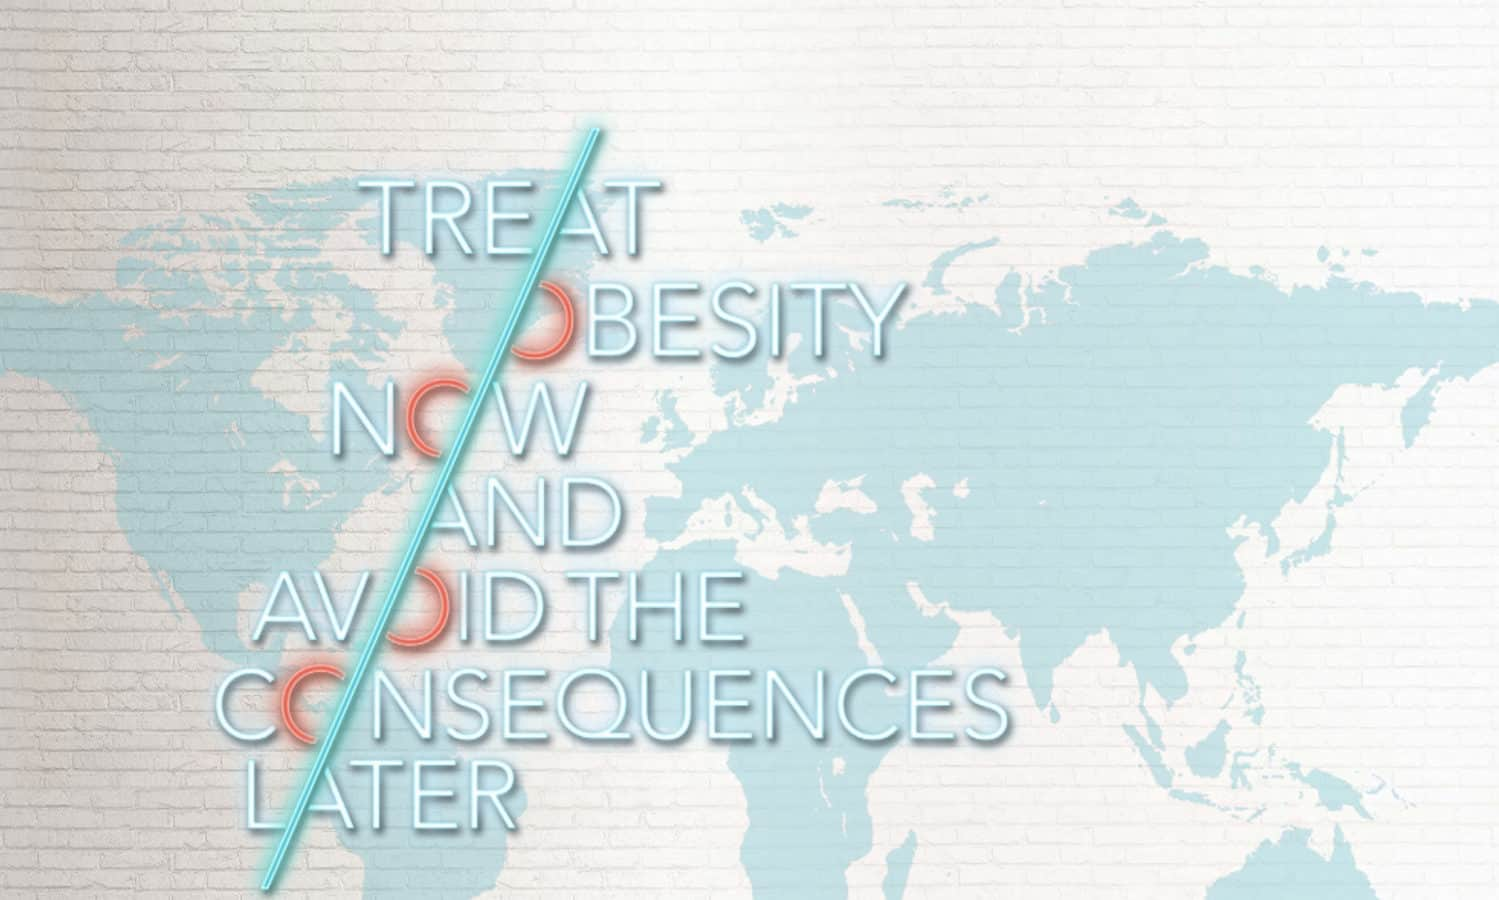 The annual cost of treating the health impacts of obesity is projected to top US$1.2 trillion globally by 2025, according to new estimates on World Obesity Day.